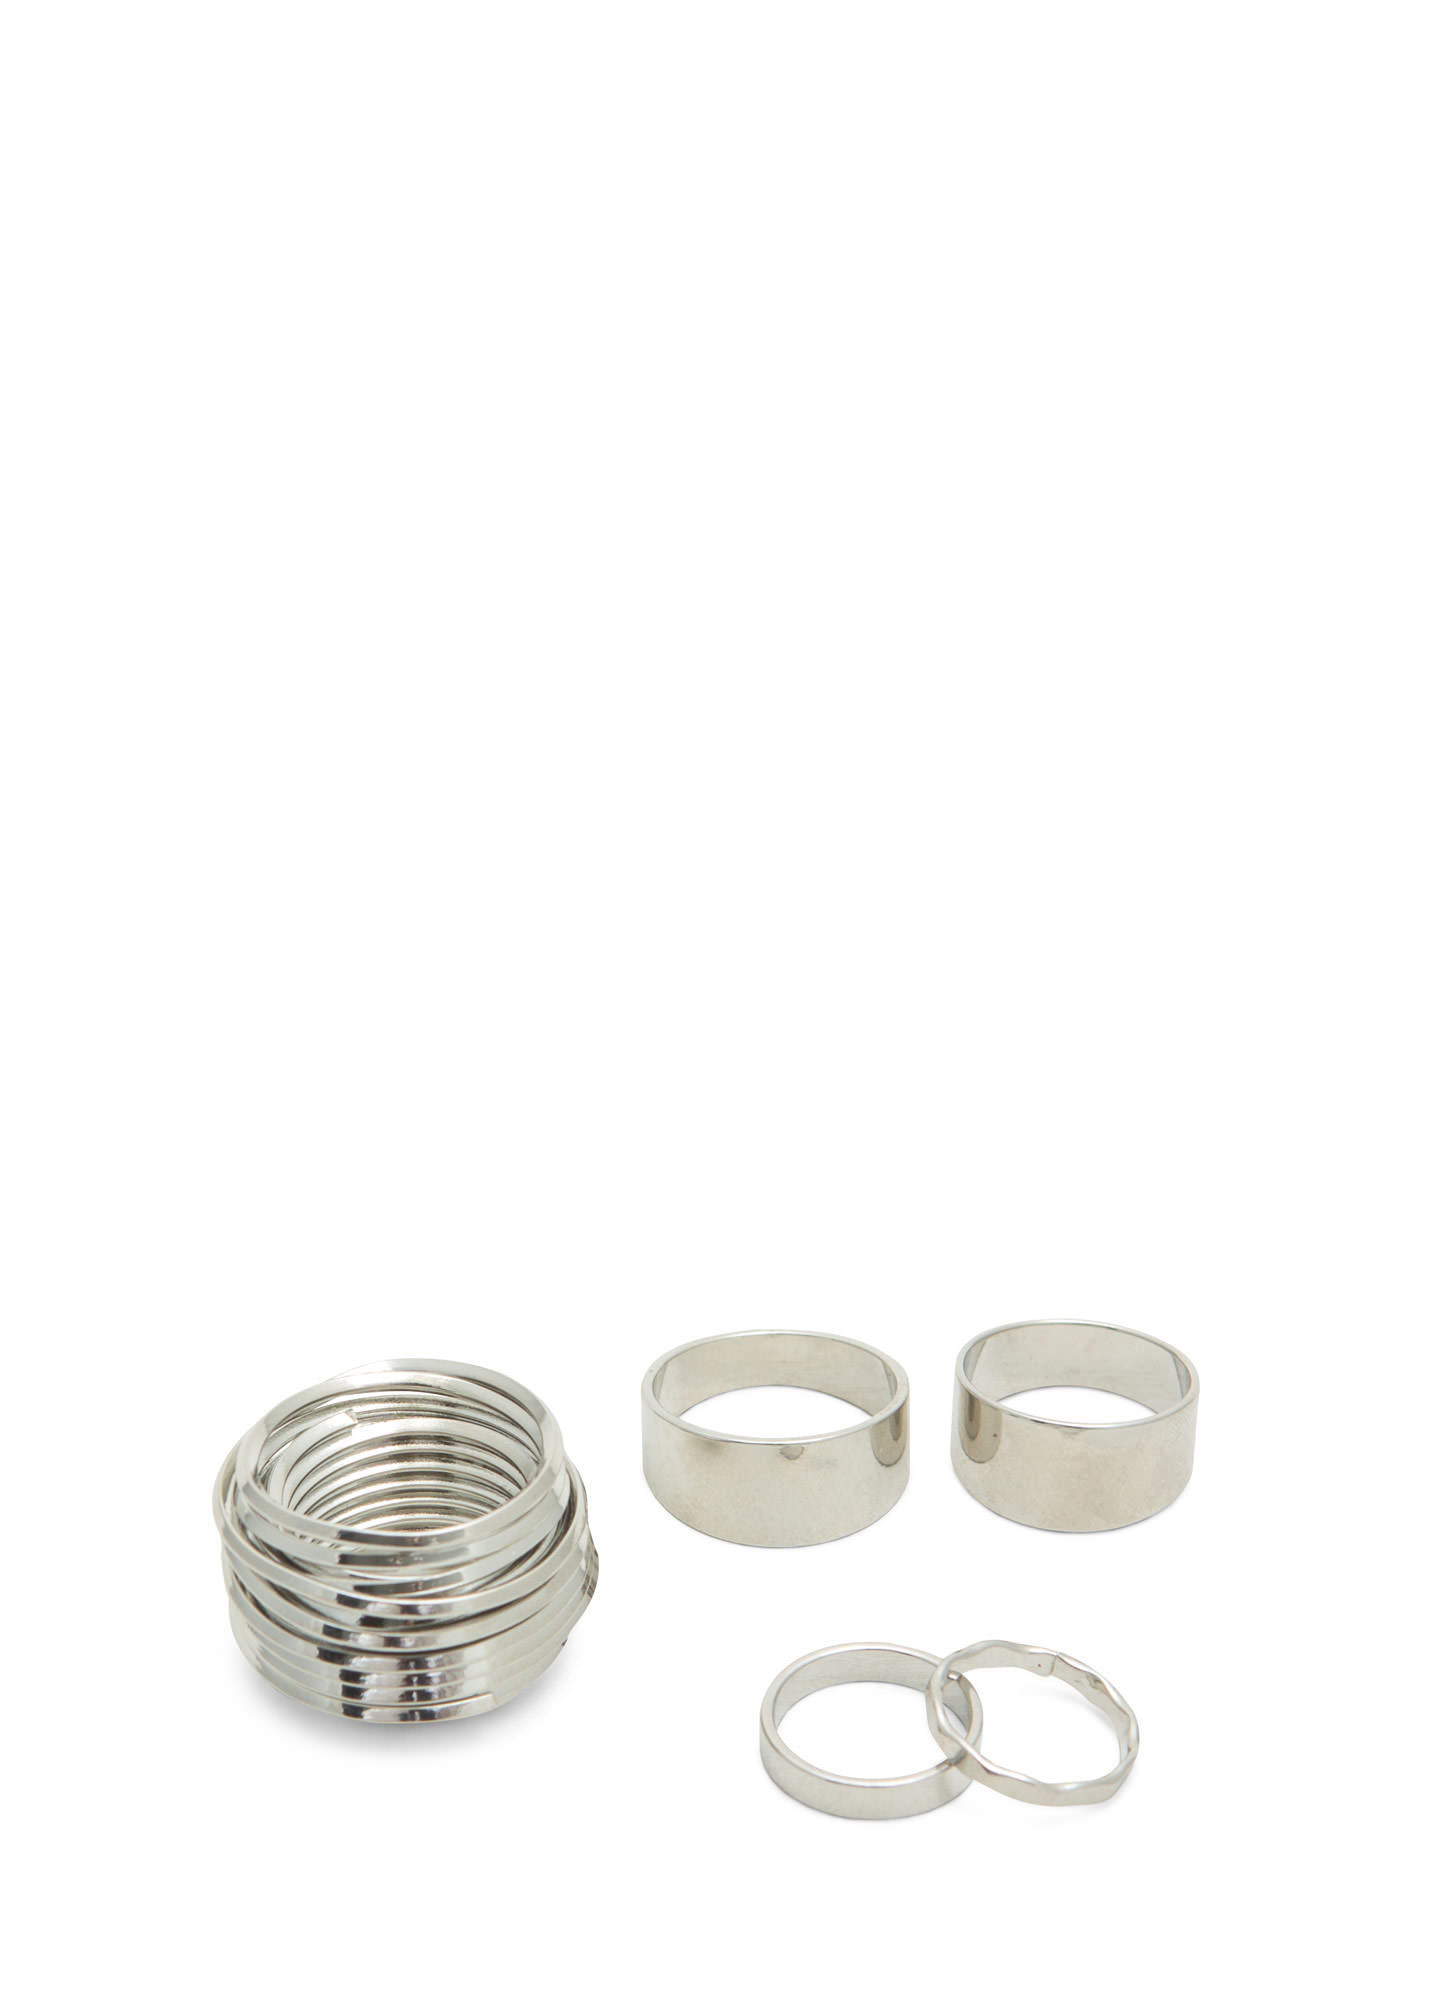 Metallic Coiled Ring Set SILVER